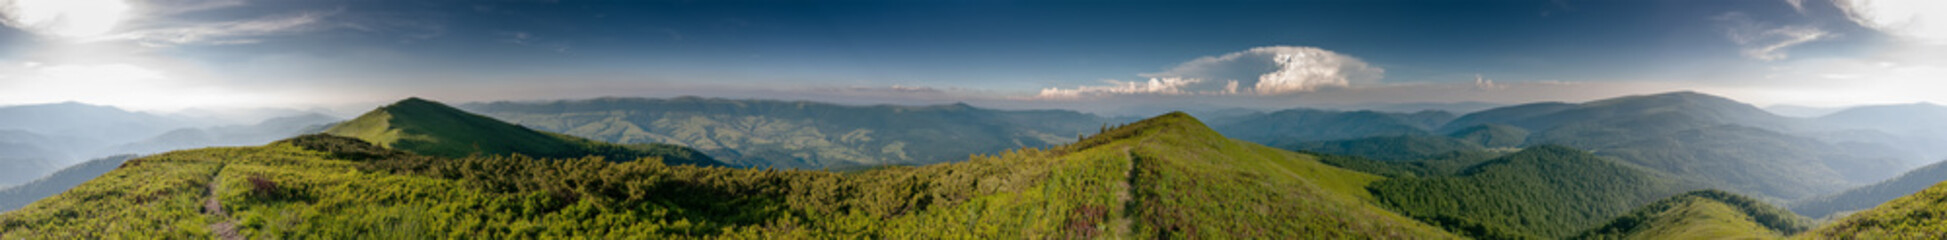 Panorama of the East Carpathian mountains